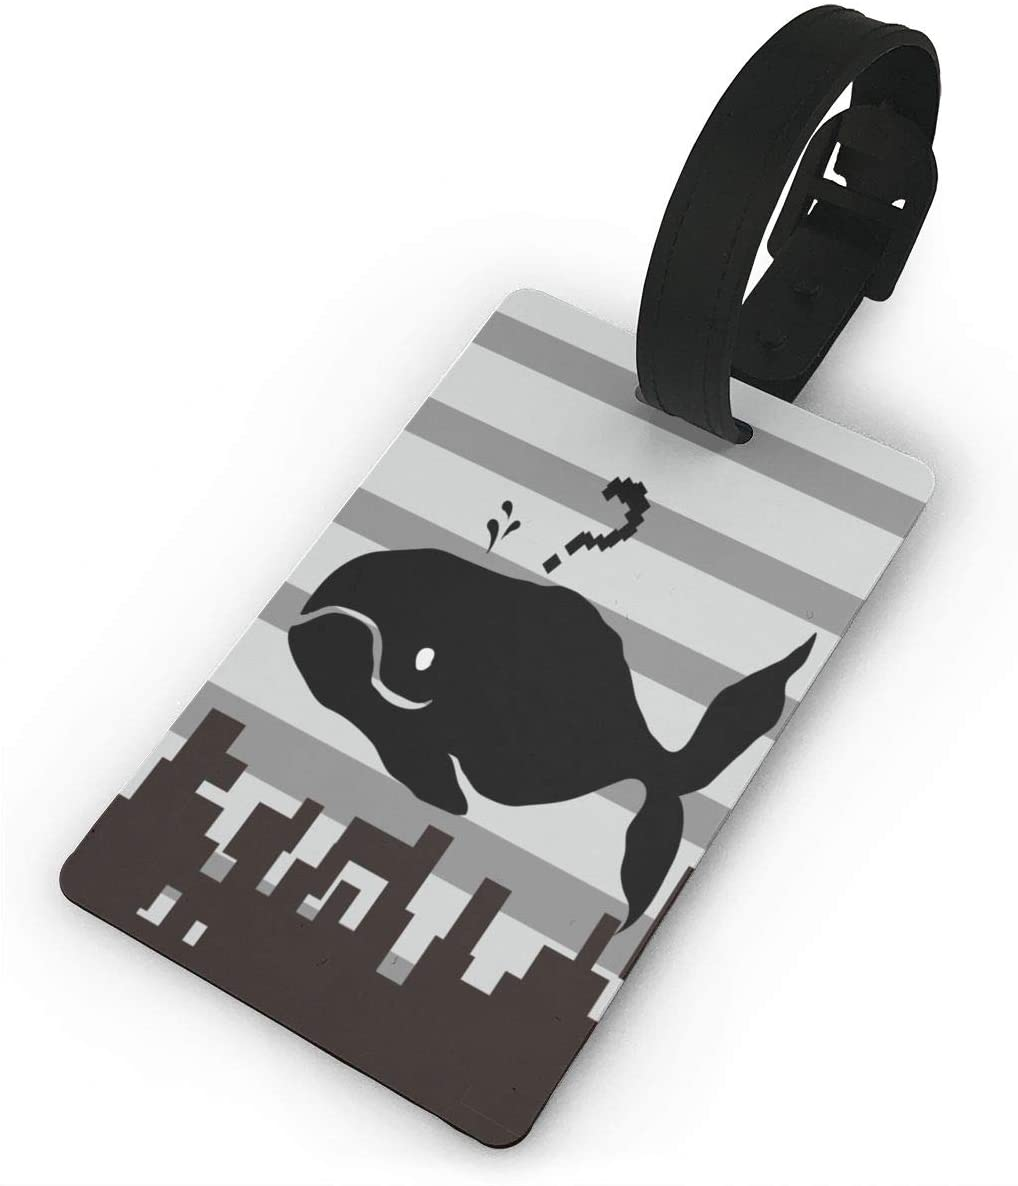 Field Rain Shark Over The Building Fashion Luggage Tag PVC Travel ID Suitcases Label For Bag